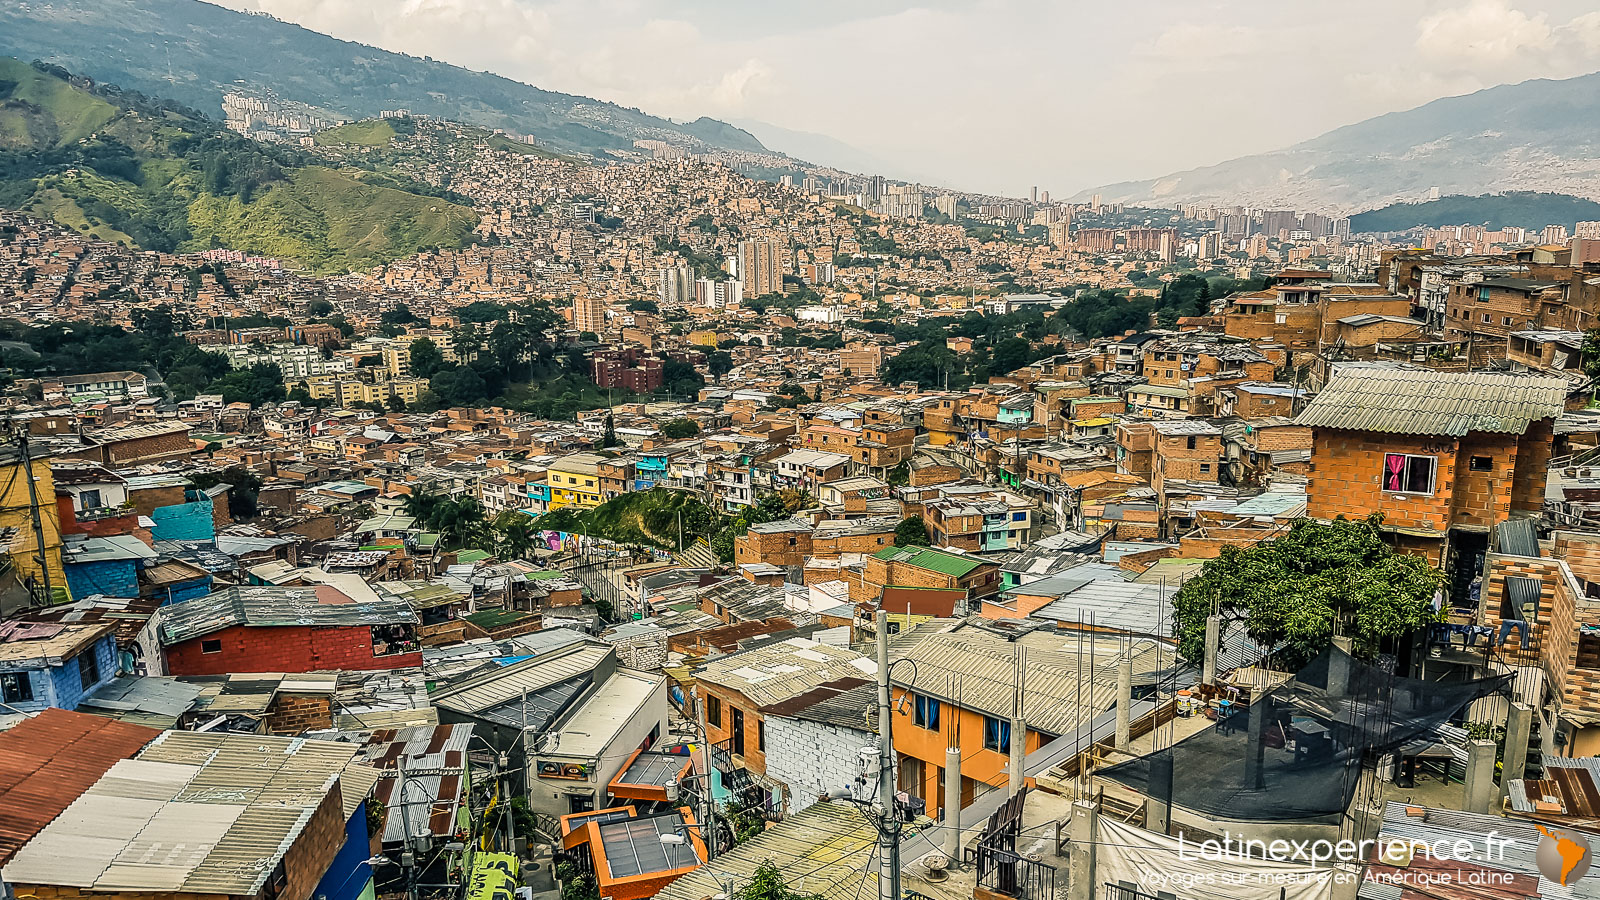 Colombie - Medellin - Latinexperience voyages